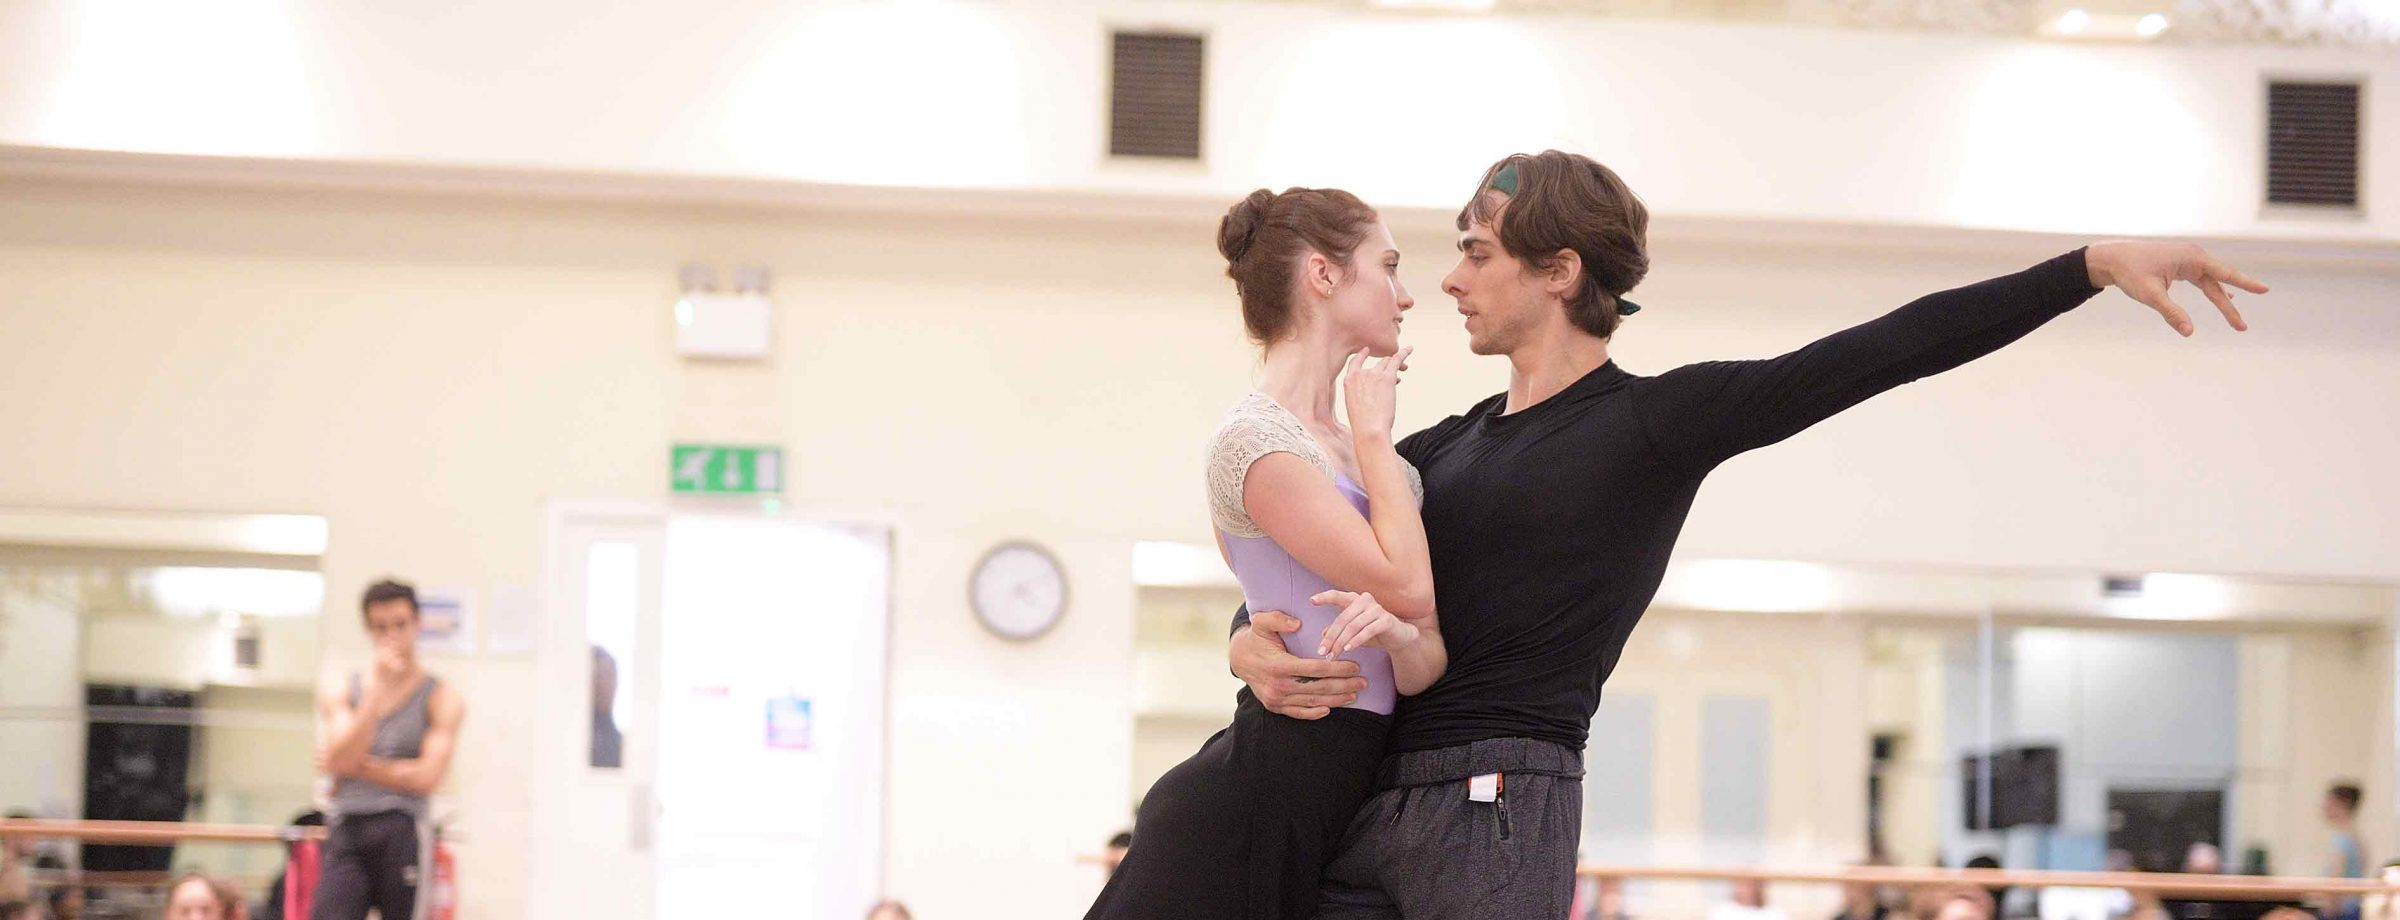 Alison-McWhinney-and-Francesco-Gabriele-Frola-in-rehearsals-for-Manon-(c)-Laurent-Liotardo-(3)_WEB